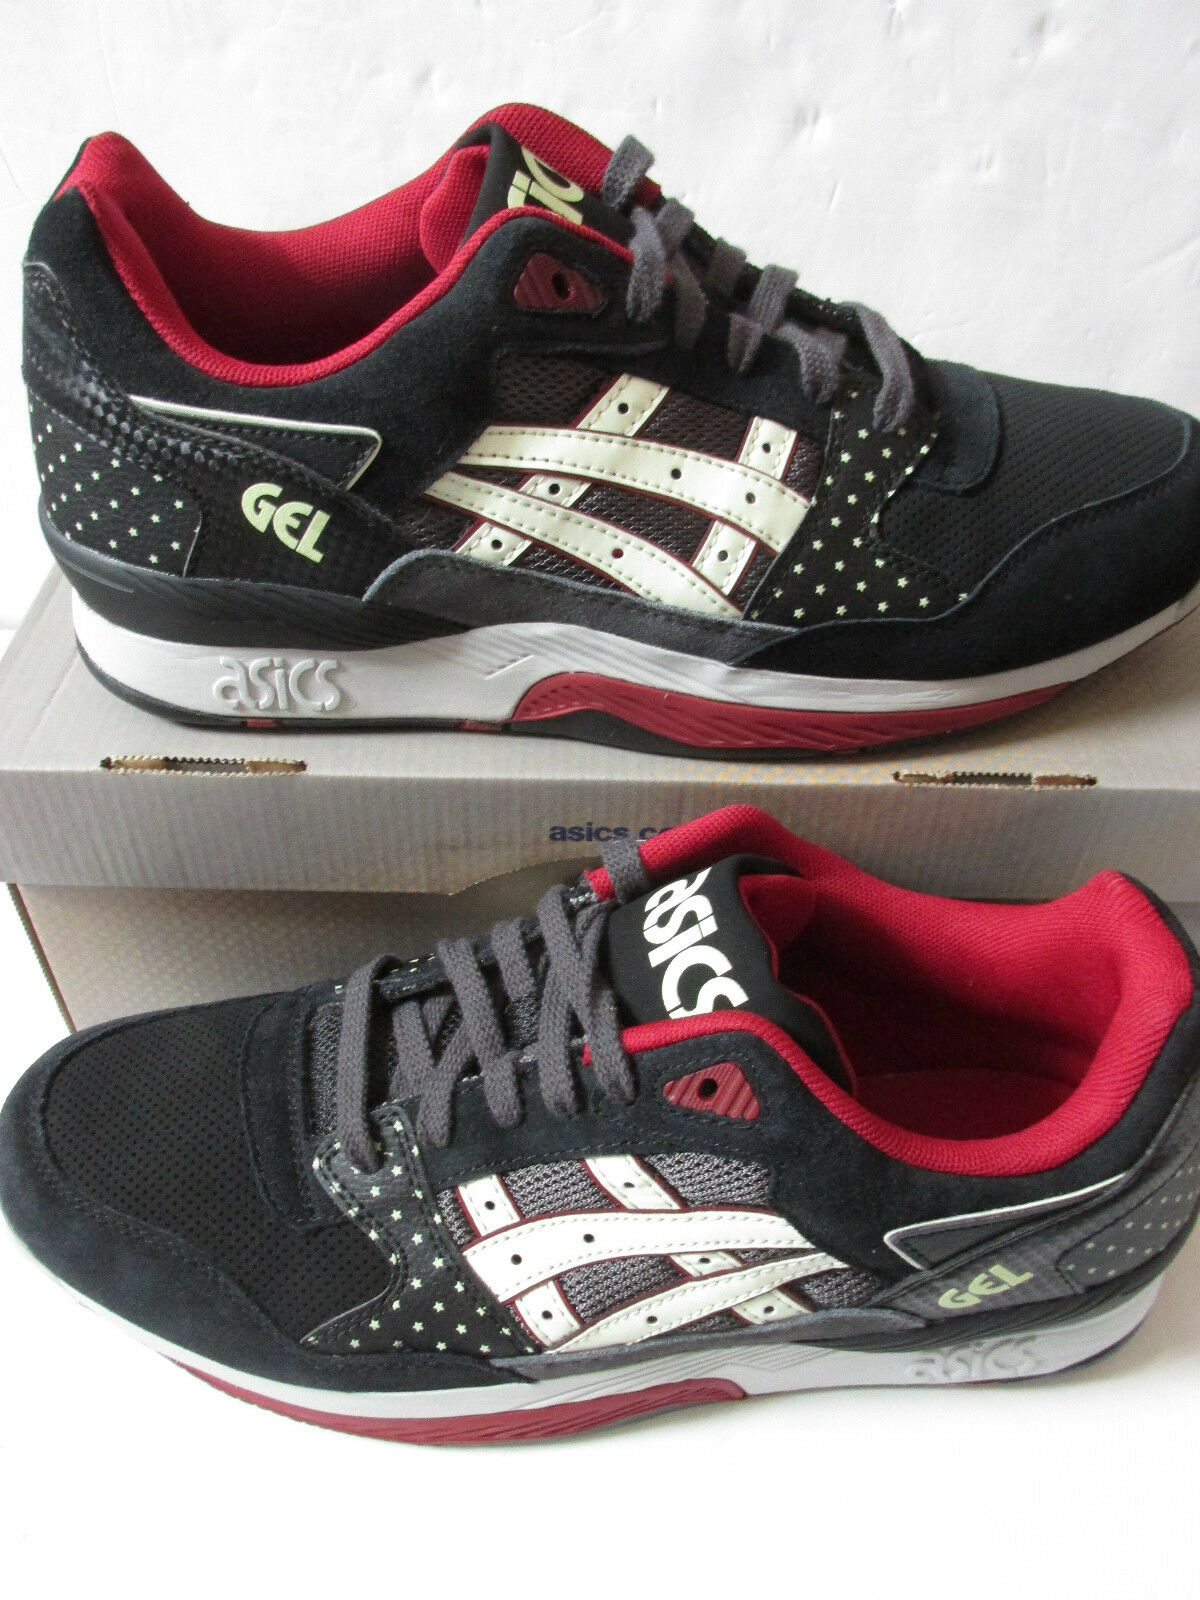 asics GT-QUICK mens trainers H443L 9007 sneakers shoes